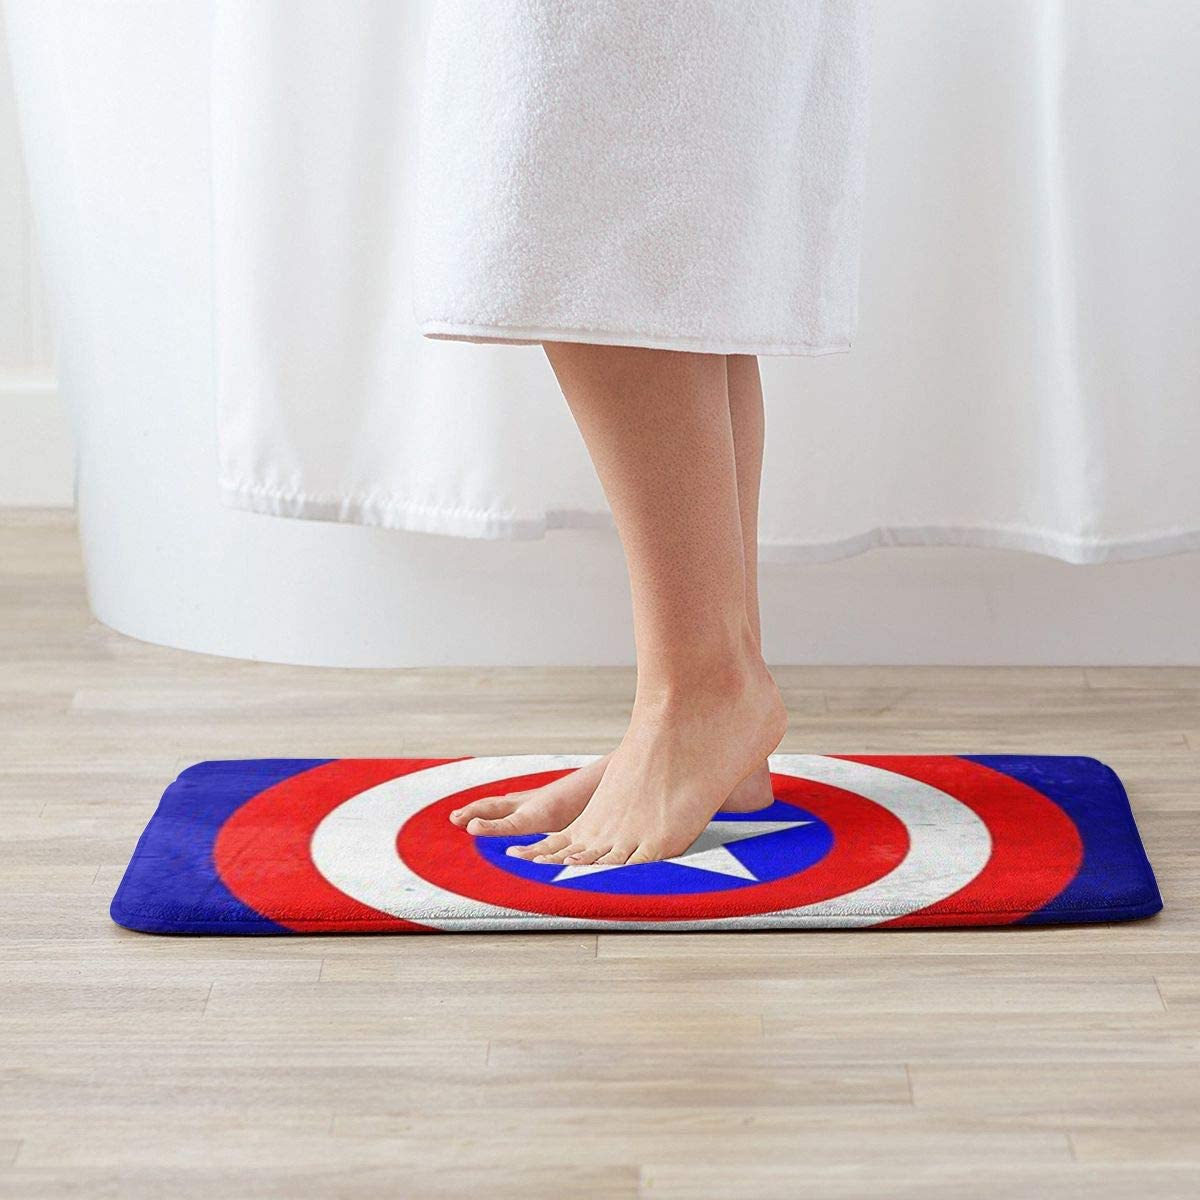 HHenry Welcome Door Mats Captain America 1 Indoor Outdoor Mats Entrance Rugs Rubber Non Slip Doormats15.7 X 23.5 Inch